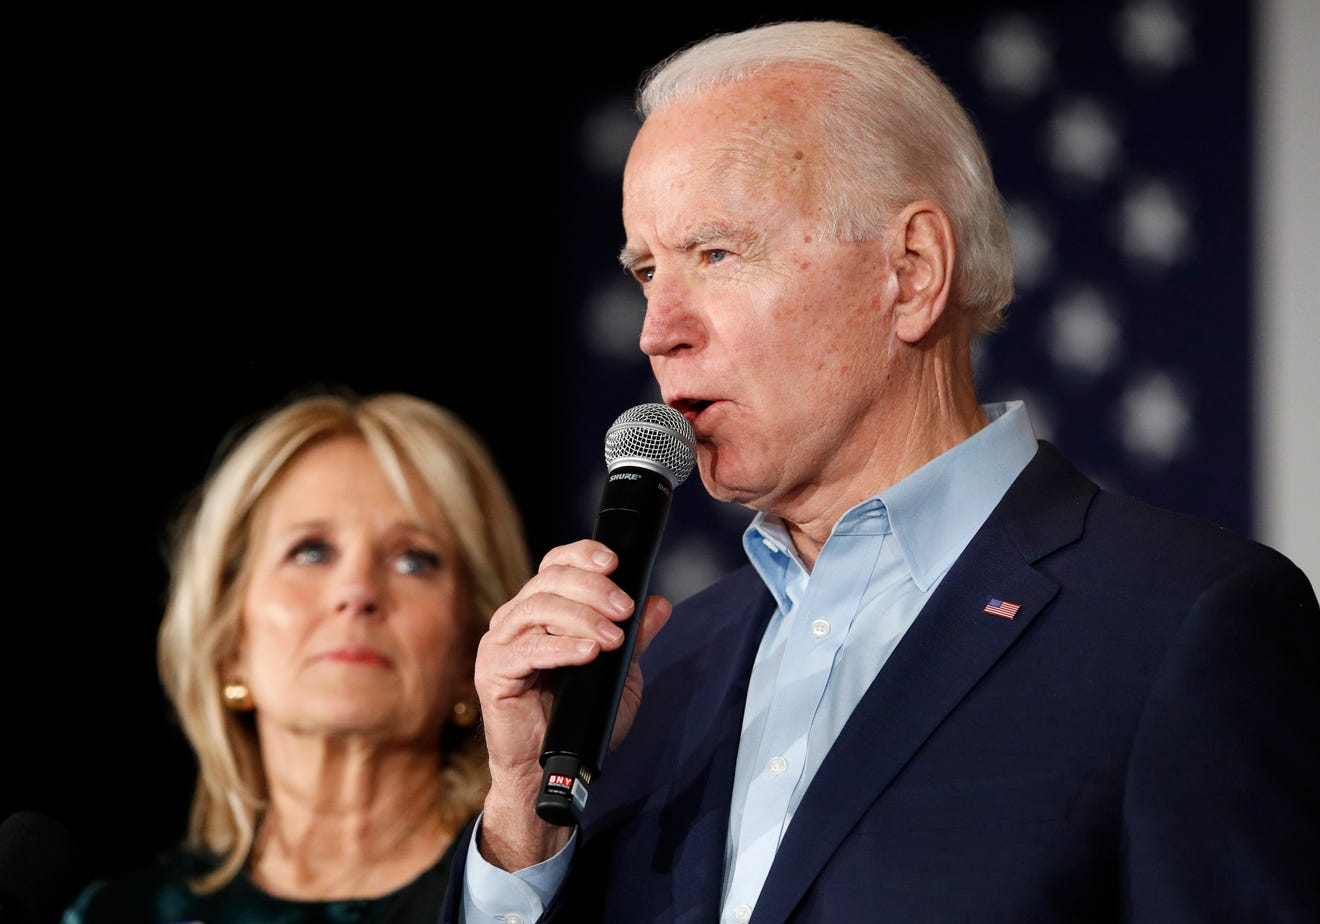 USA TODAY (Opinion) – Joe Biden would show selfless patriotism by quitting the 2020 Democratic nomination race